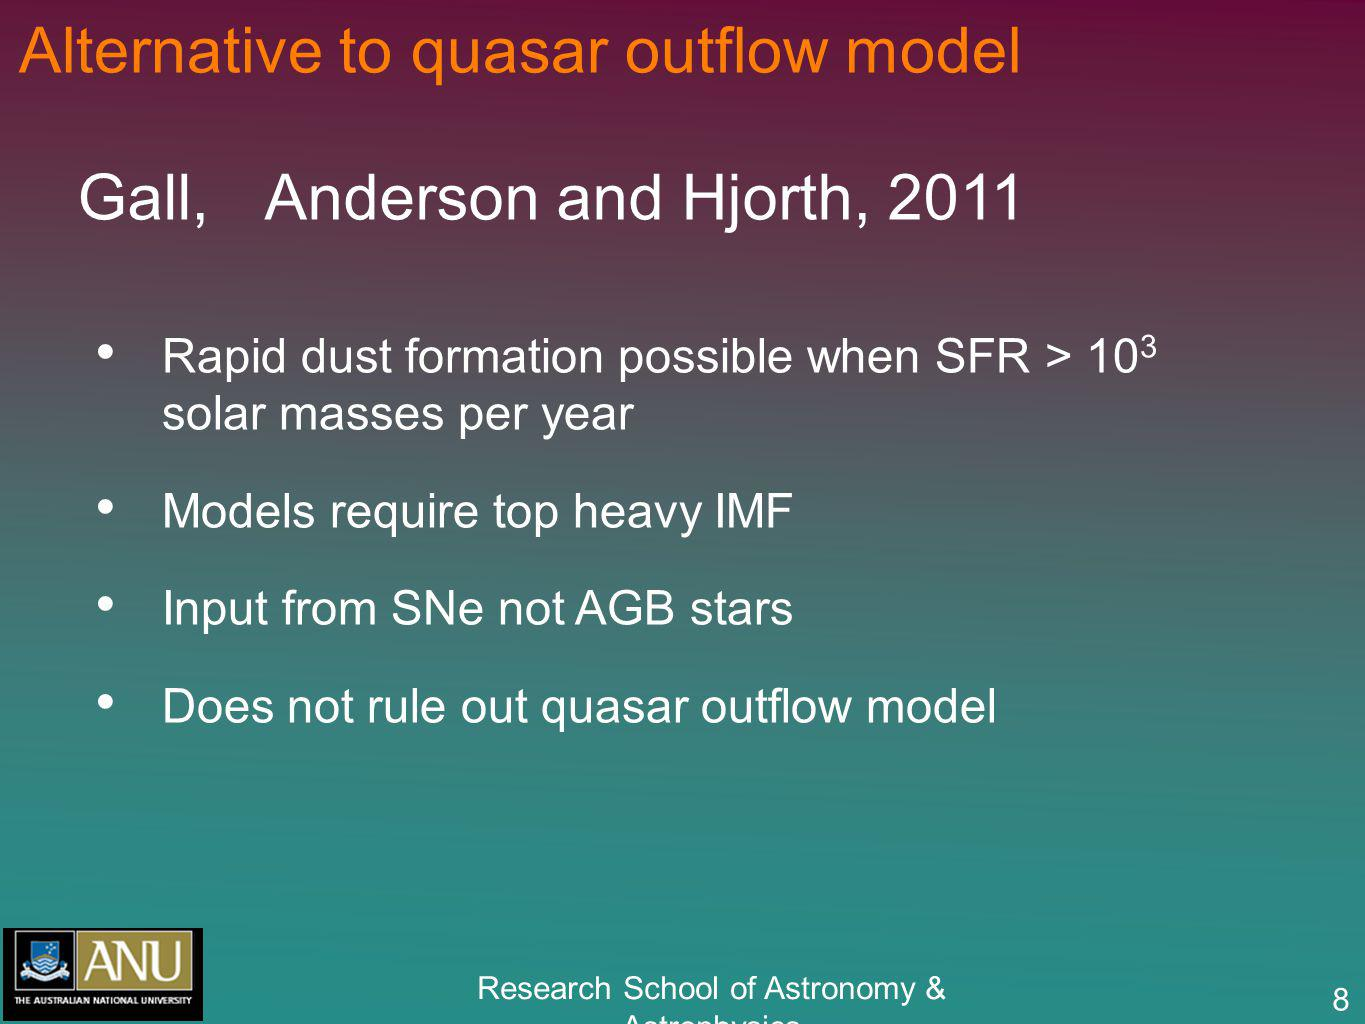 Research School of Astronomy & Astrophysics 8 Alternative to quasar outflow model Gall, Anderson and Hjorth, 2011 Rapid dust formation possible when S